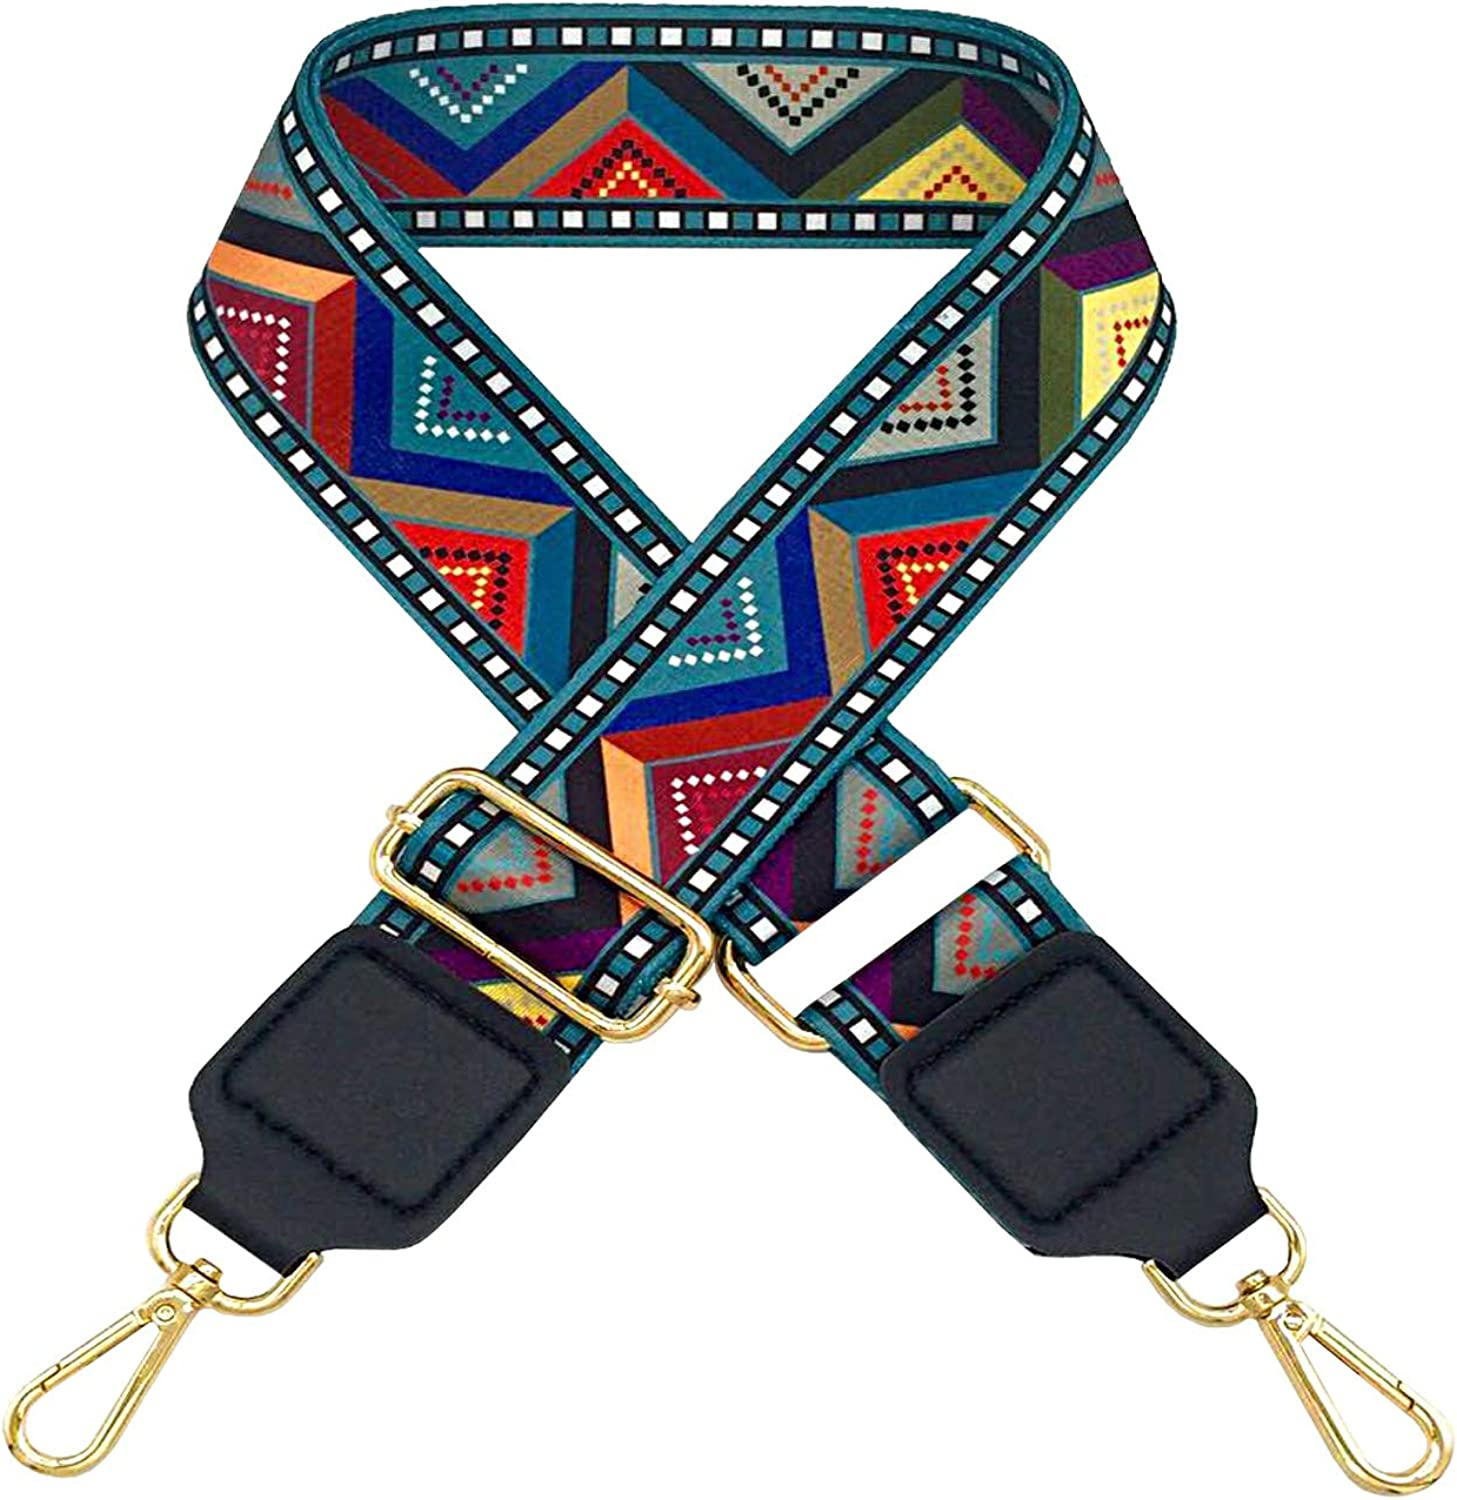 Gold Hook 2 Heavy Duty Shoulder Crossbody Bag Belt Handle Adjustable Ethnic Style Colorful Bag Strap Wide Handbag Accessories